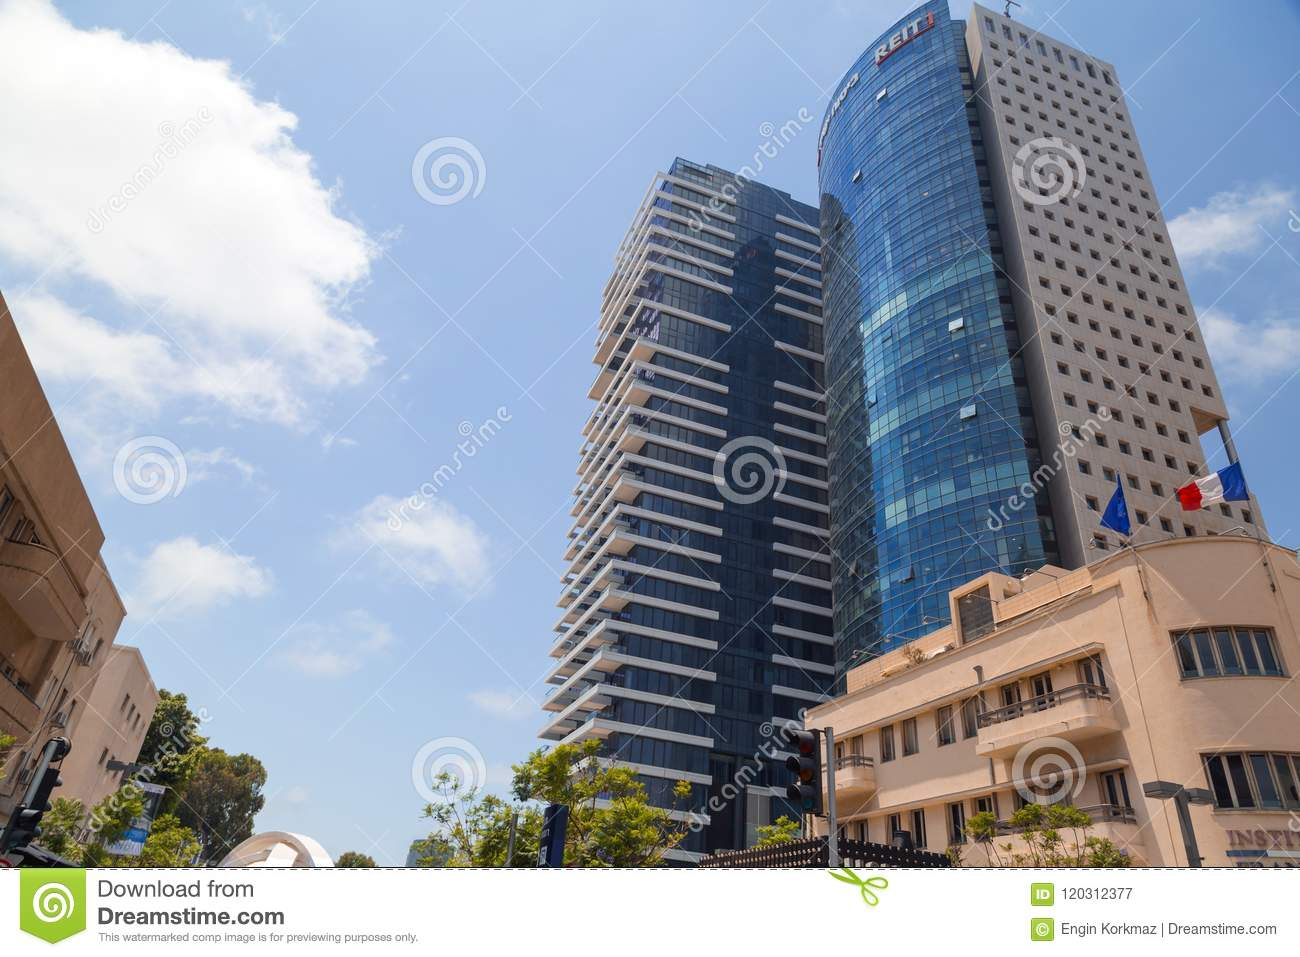 Buildings and people walking around at the famous Rothschild Bou